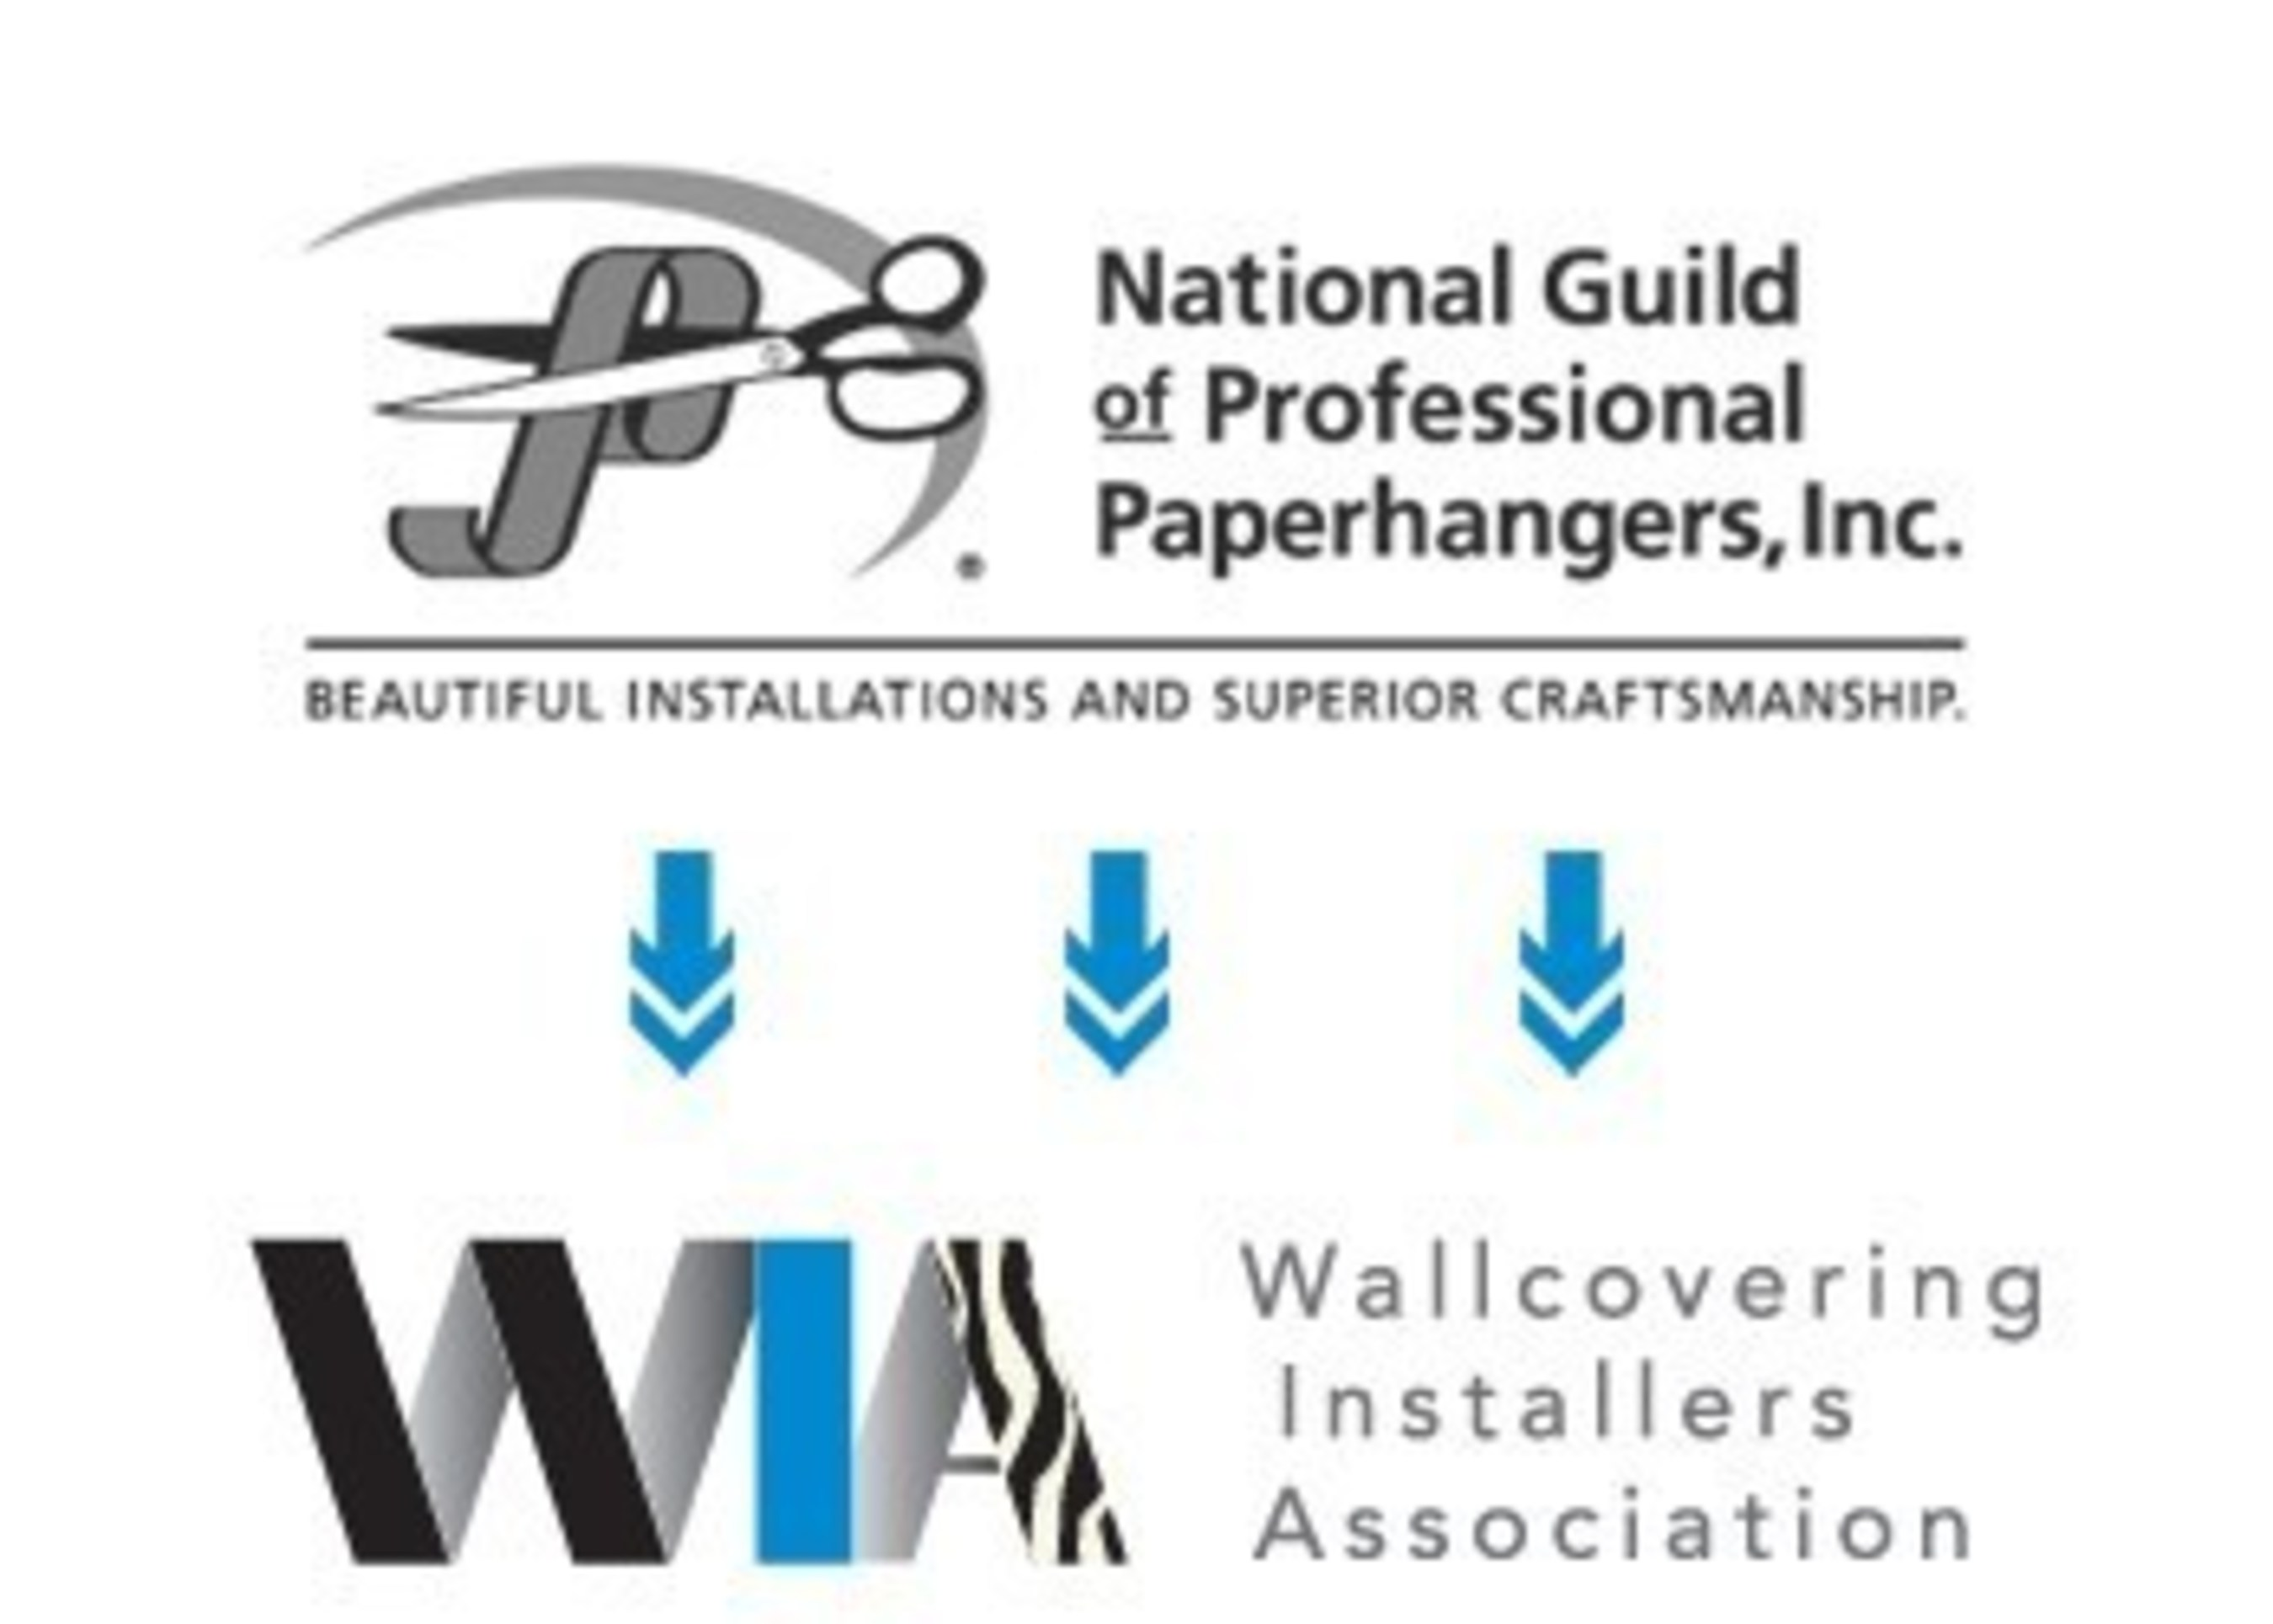 National Guild of Professional Paperhangers Rebranded as Wallcovering Installers Association, Aims to Maintain High Standards for Excellence and Foster ...